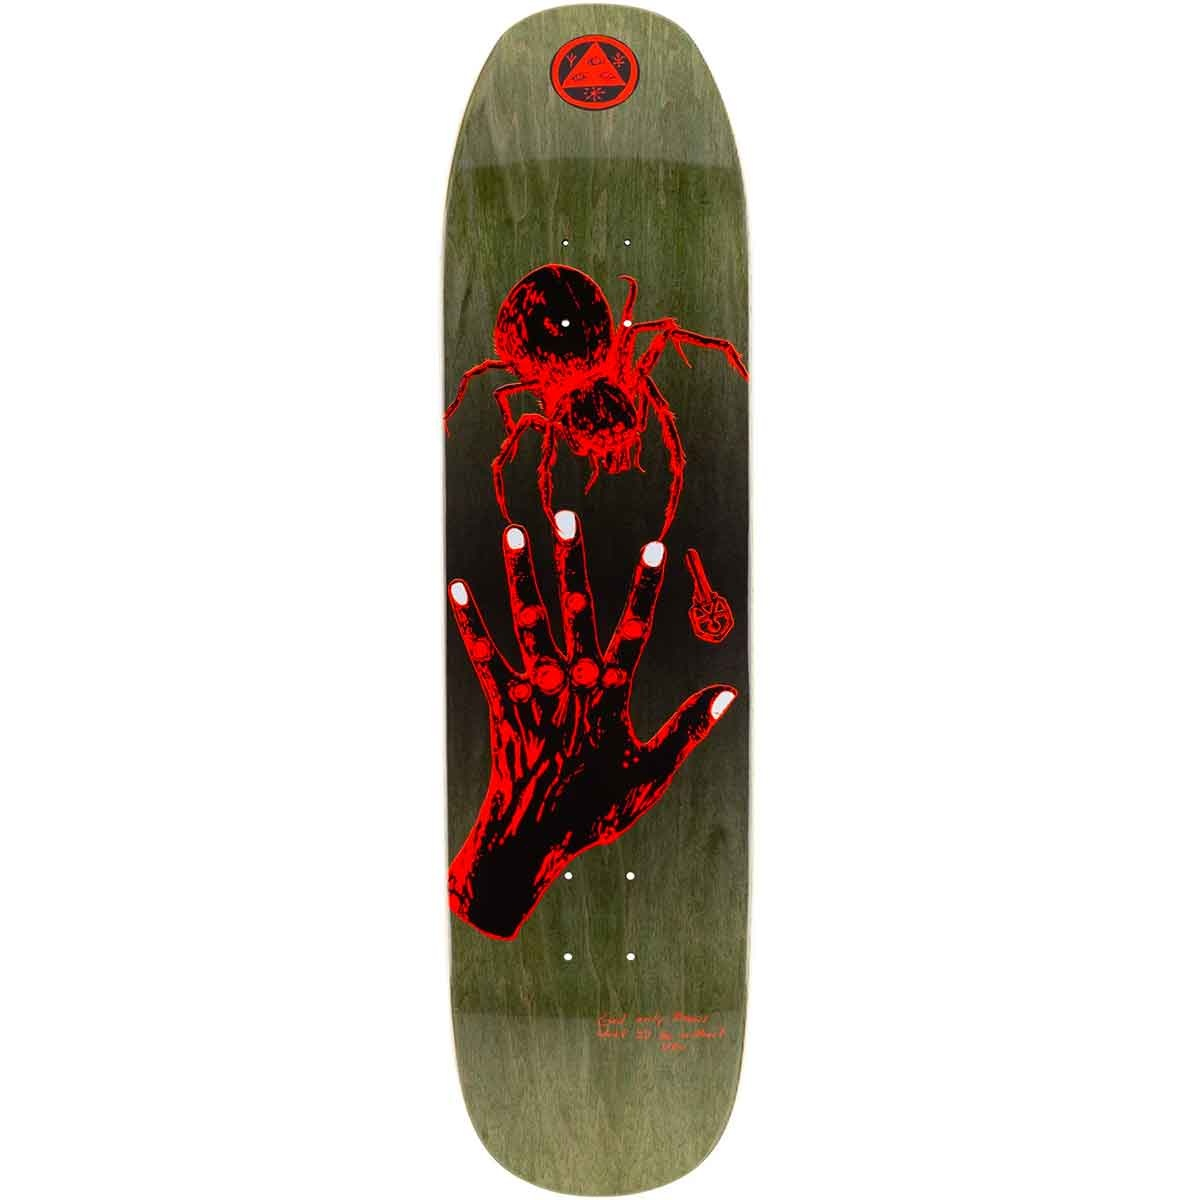 welcome skateboards gateway on son of moontrimmer 8.25 deck